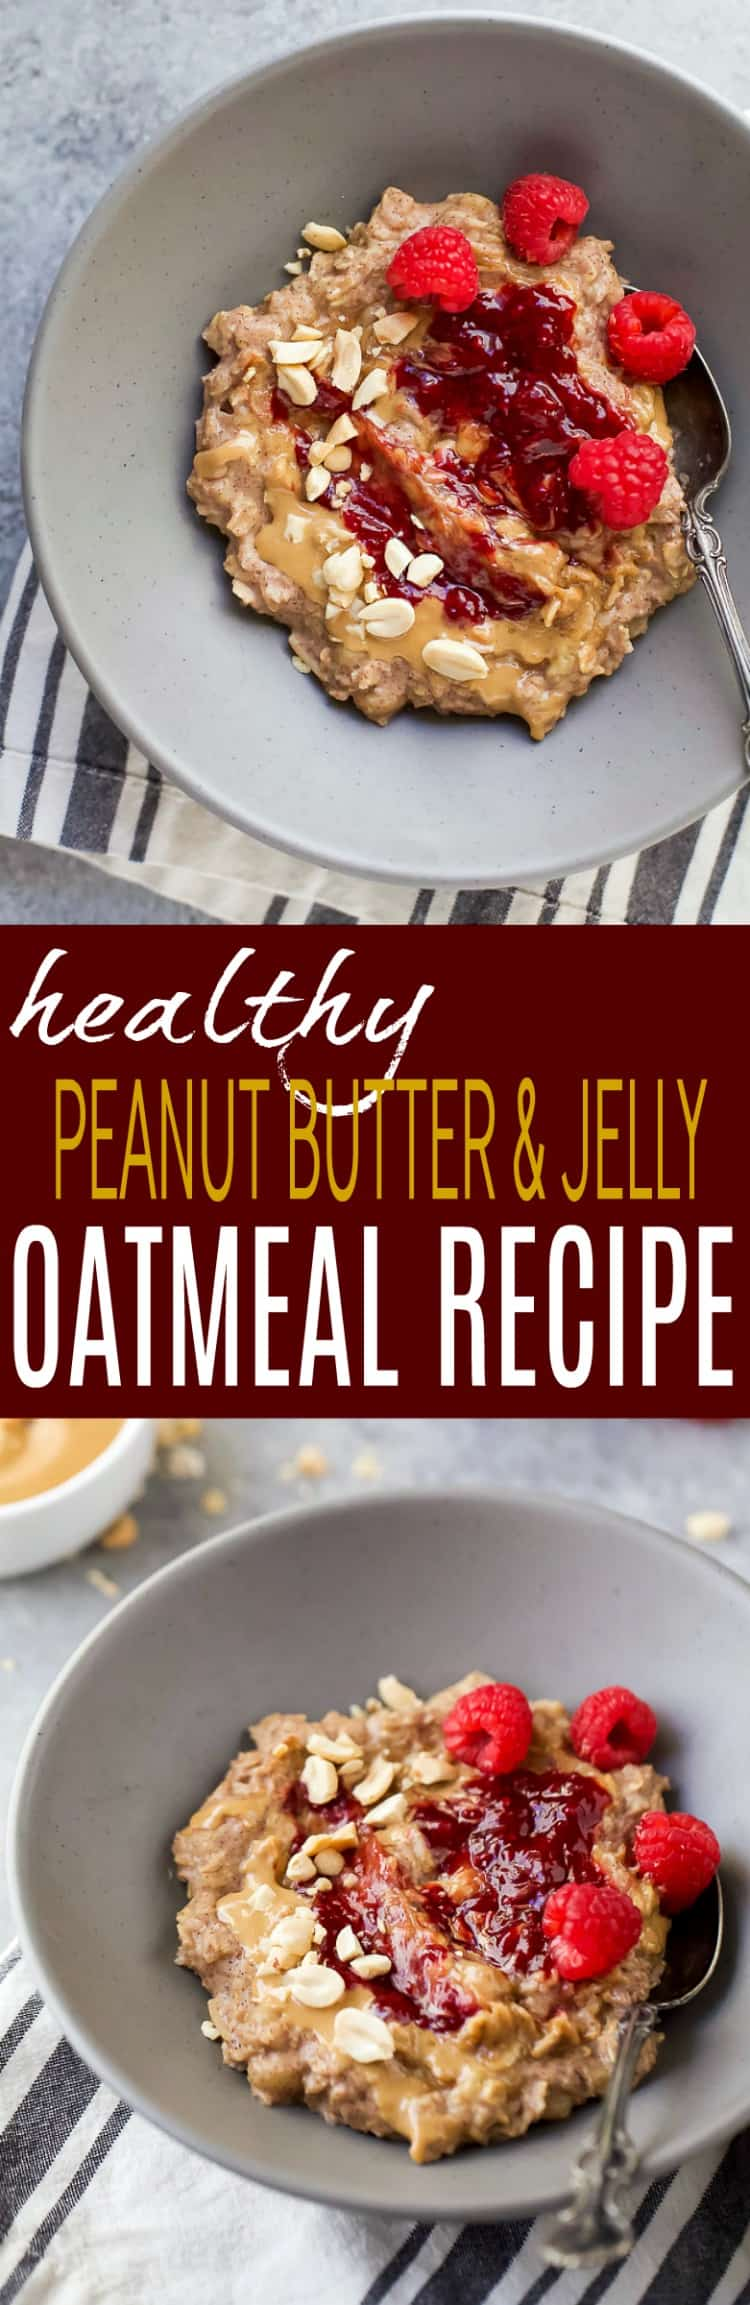 Title Image for Healthy Peanut Butter & Jelly Oatmeal